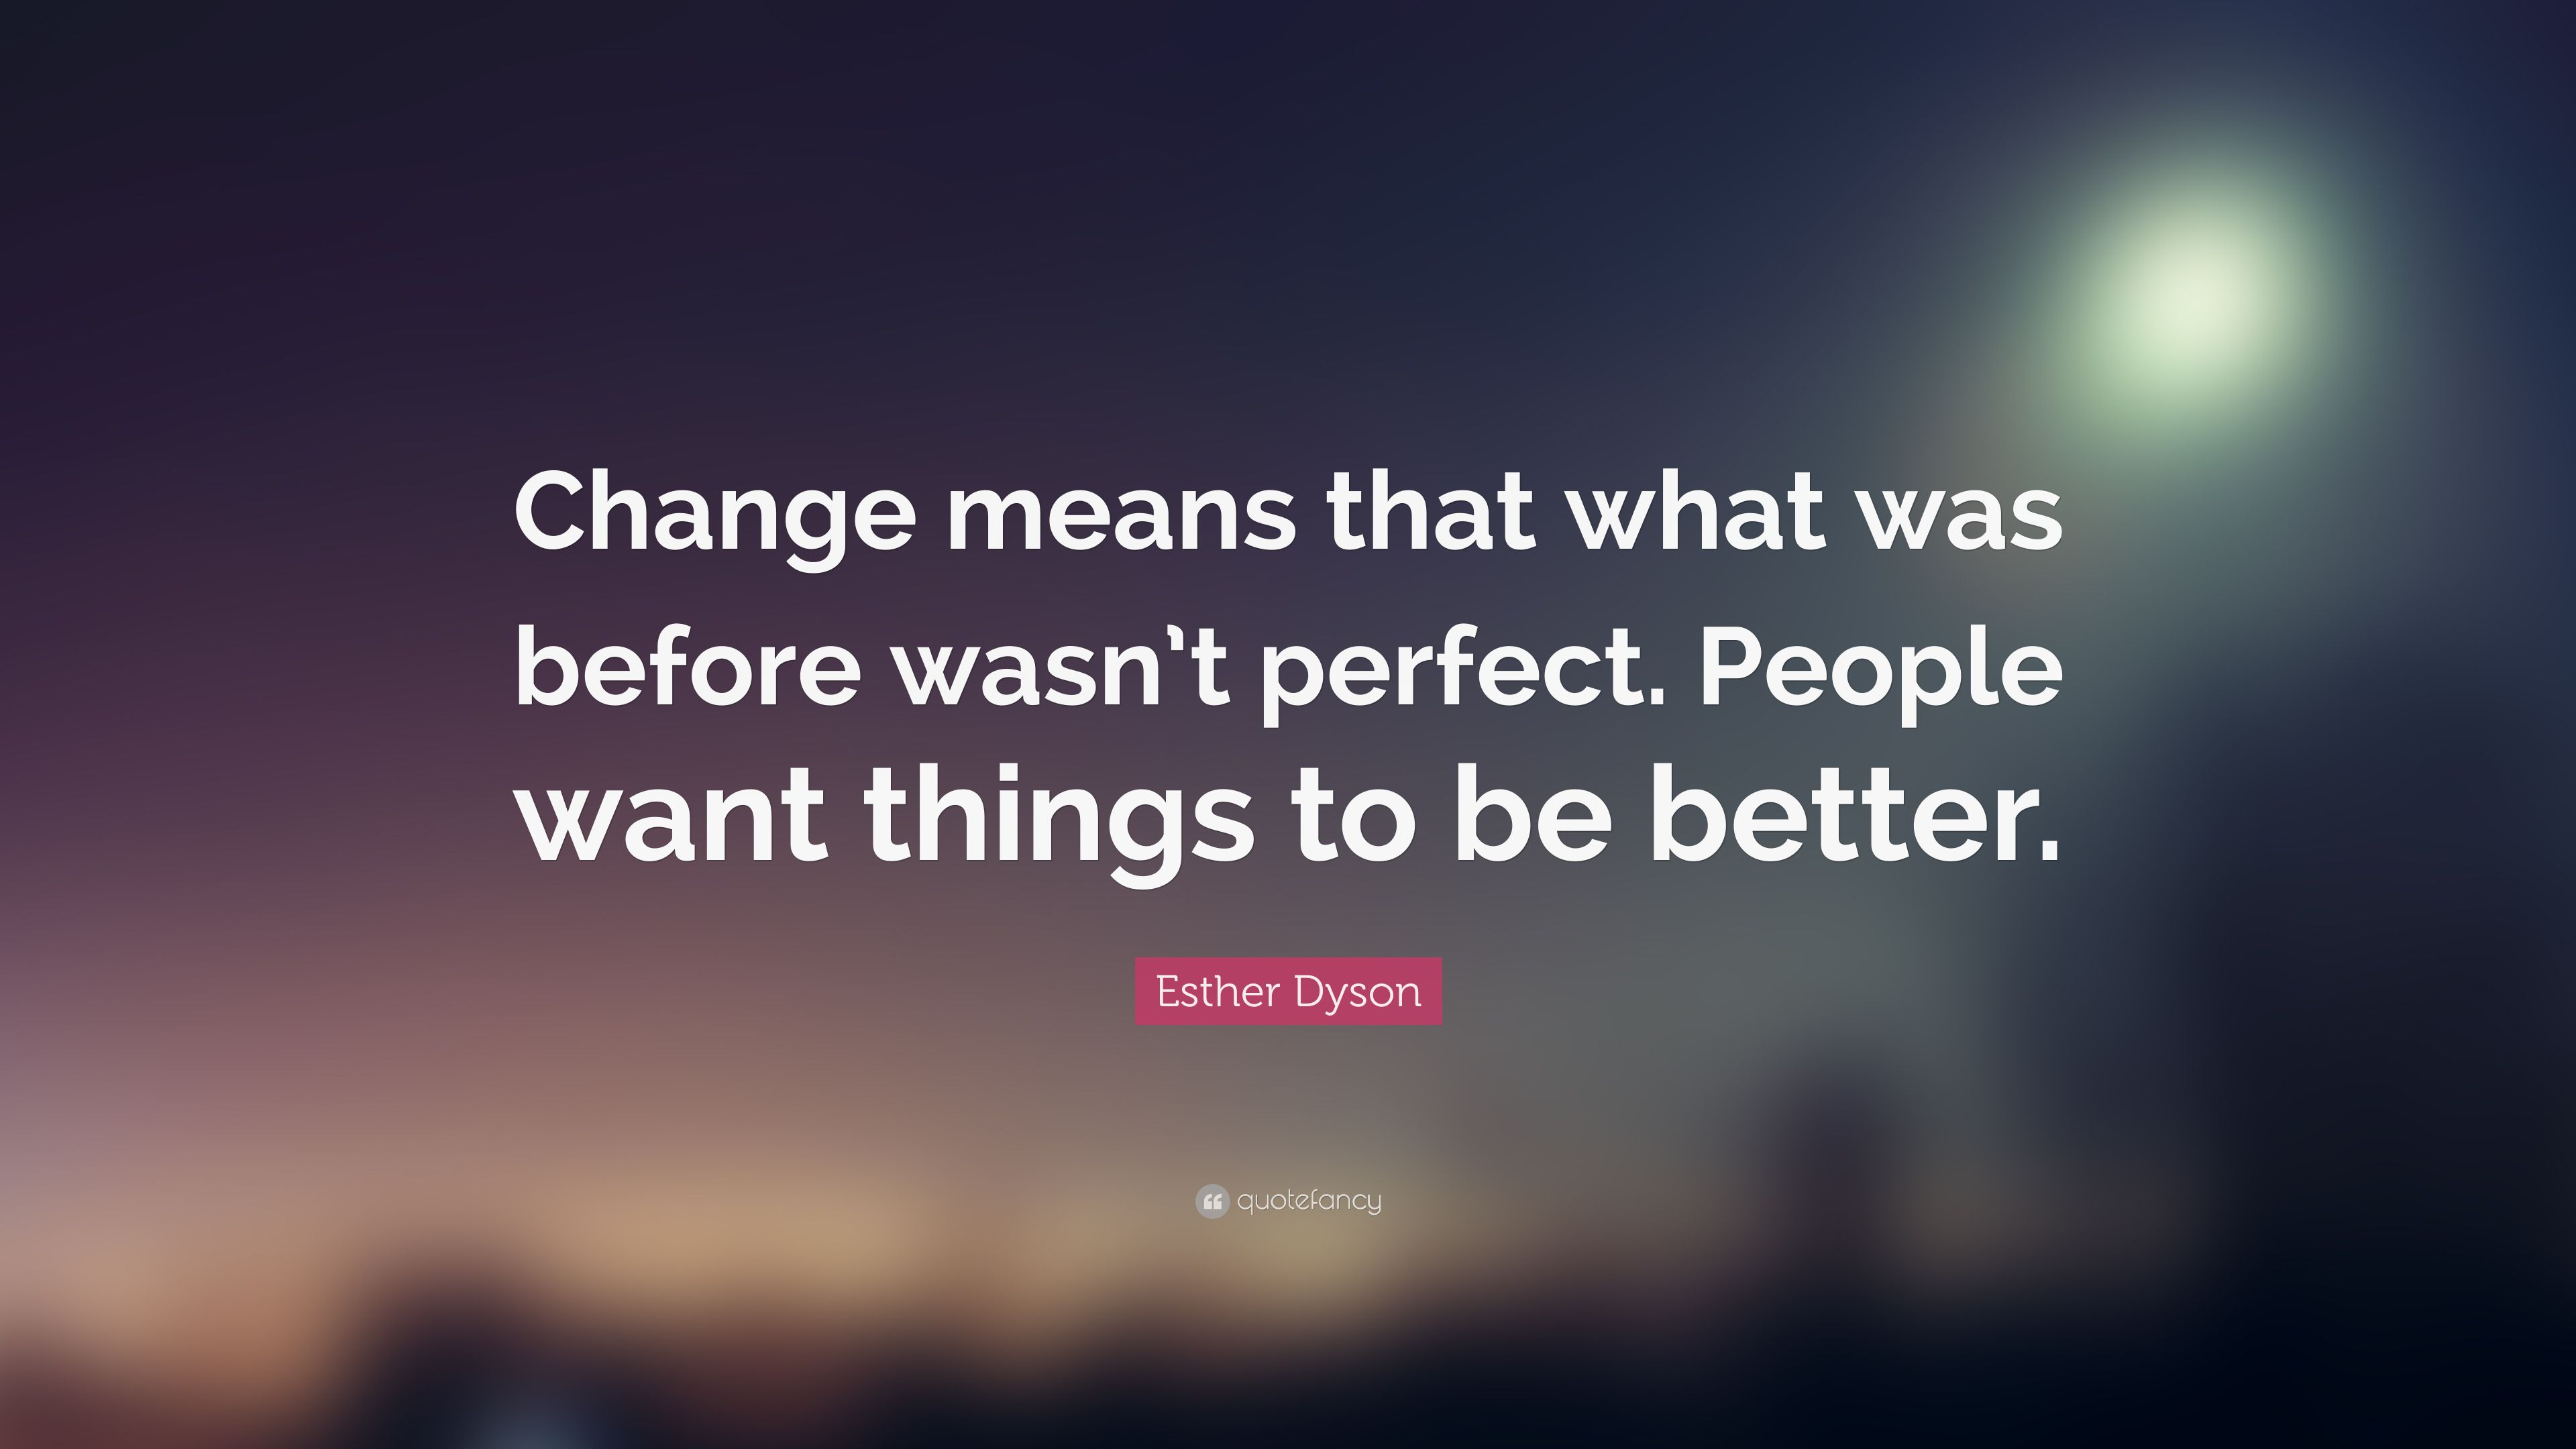 Esther Dyson Quote: change means that what was before wasn't perfect, people want things to be better